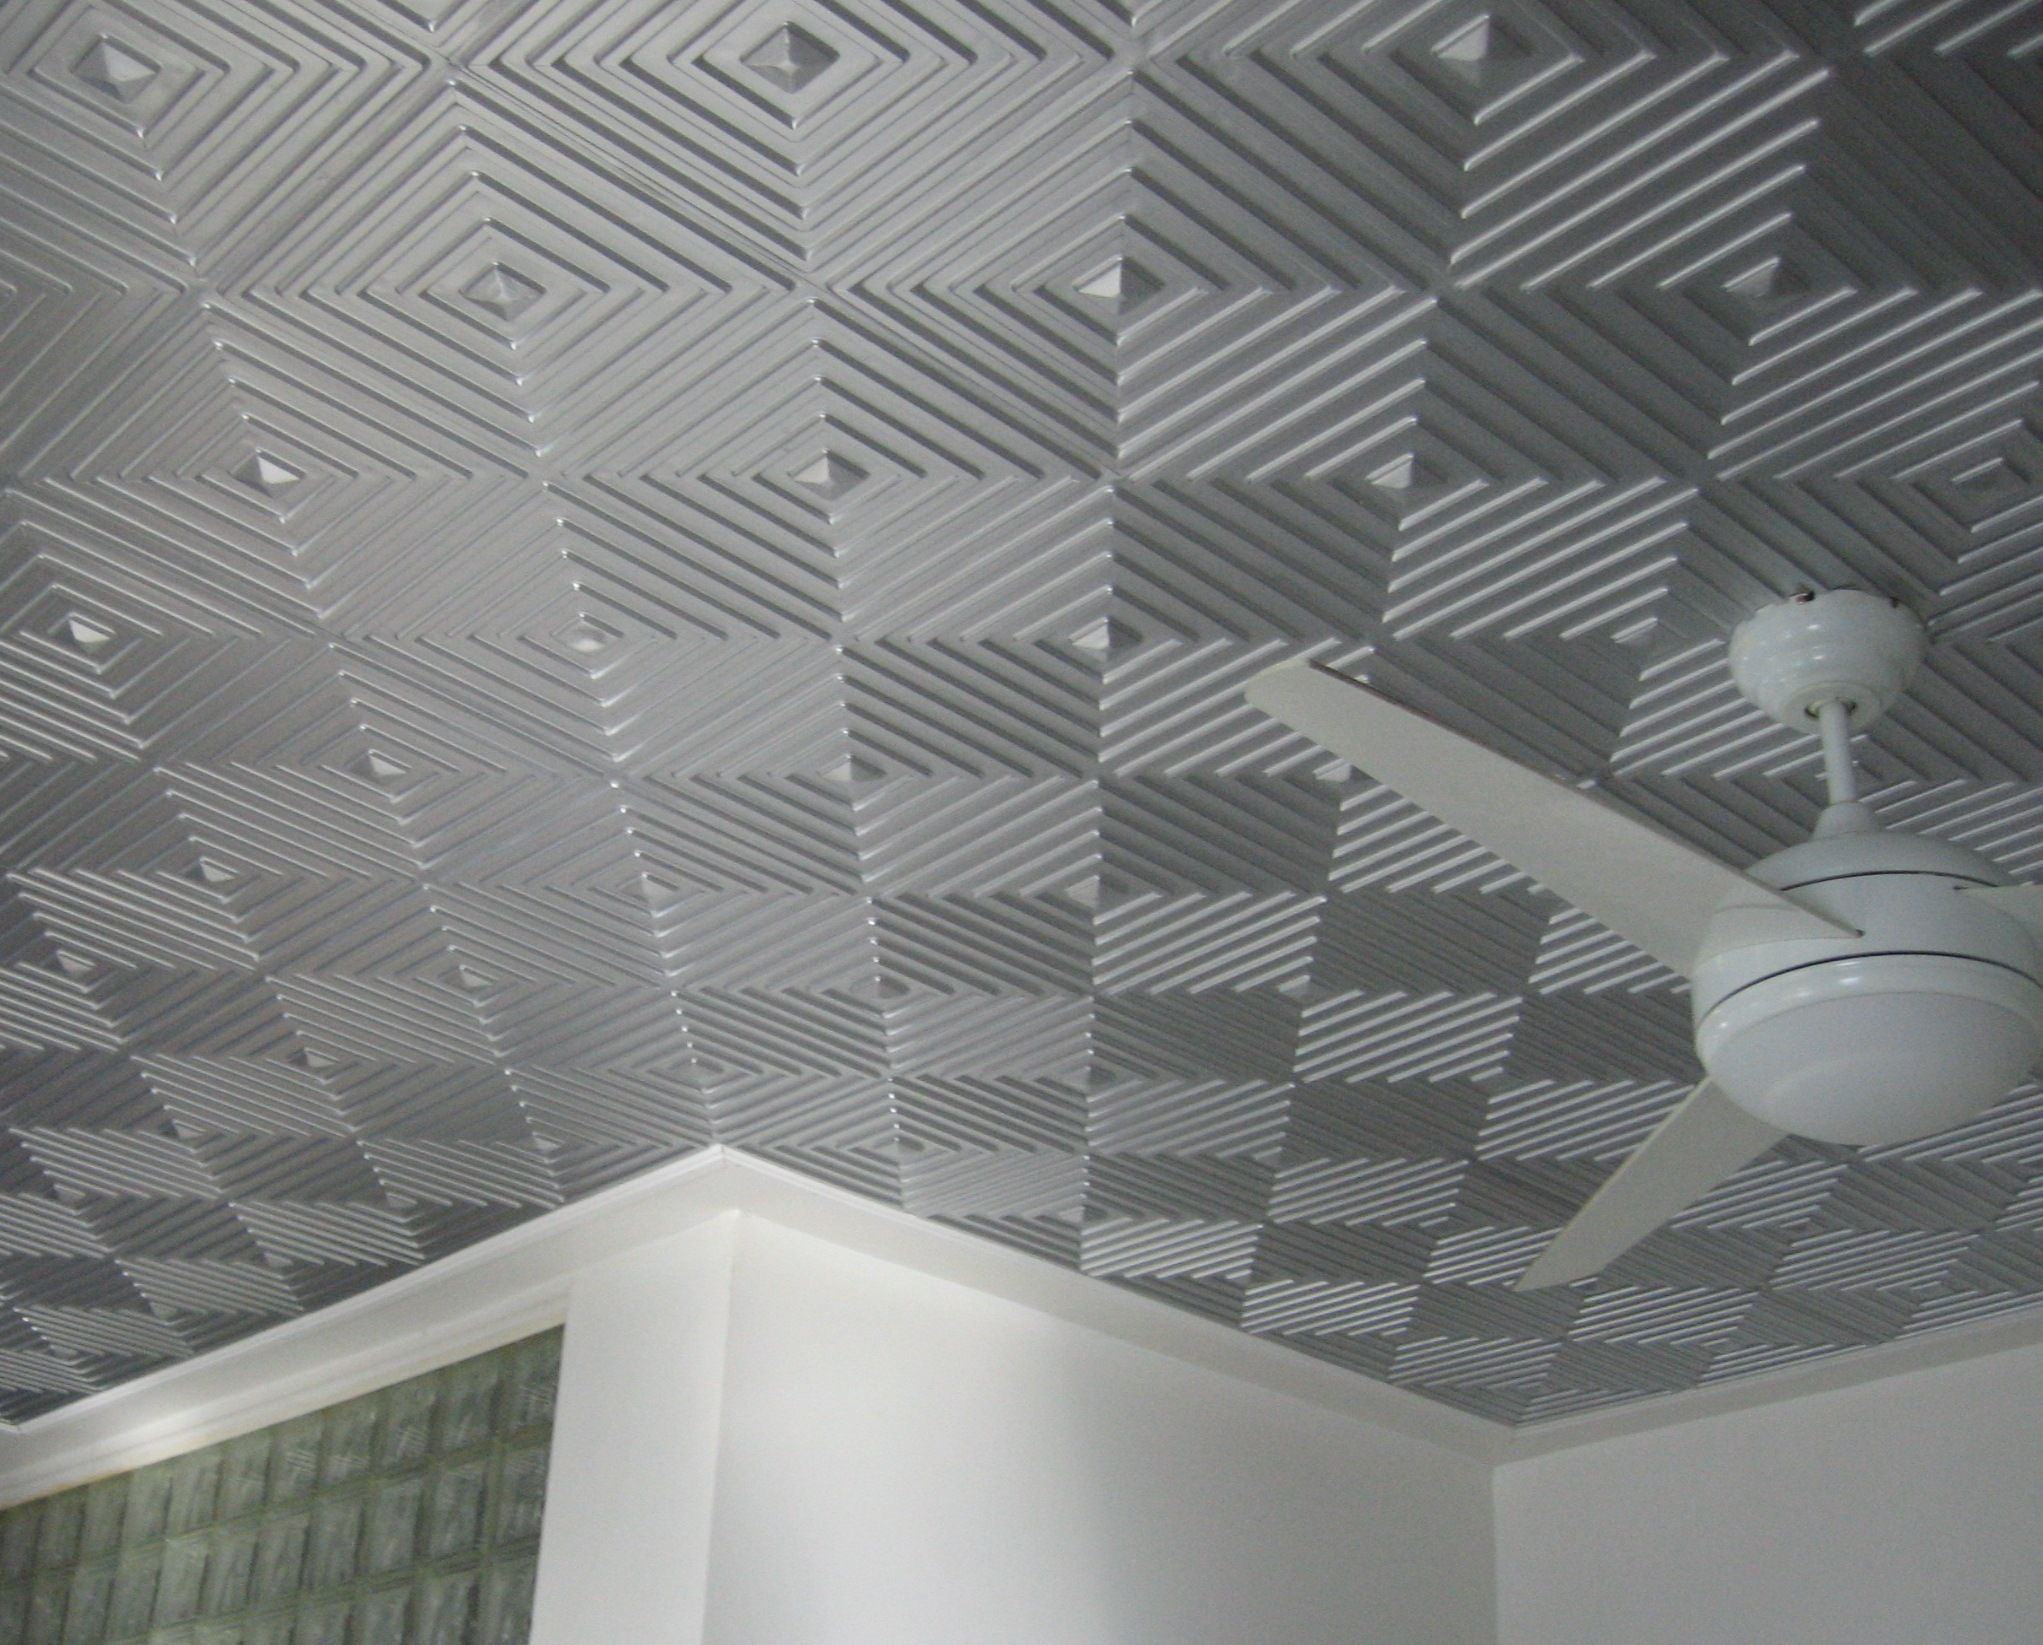 Decorative Wood Ceiling Tiles Awesome Graysilver Ceiling Tile Idea With Cool Geometric Stripes